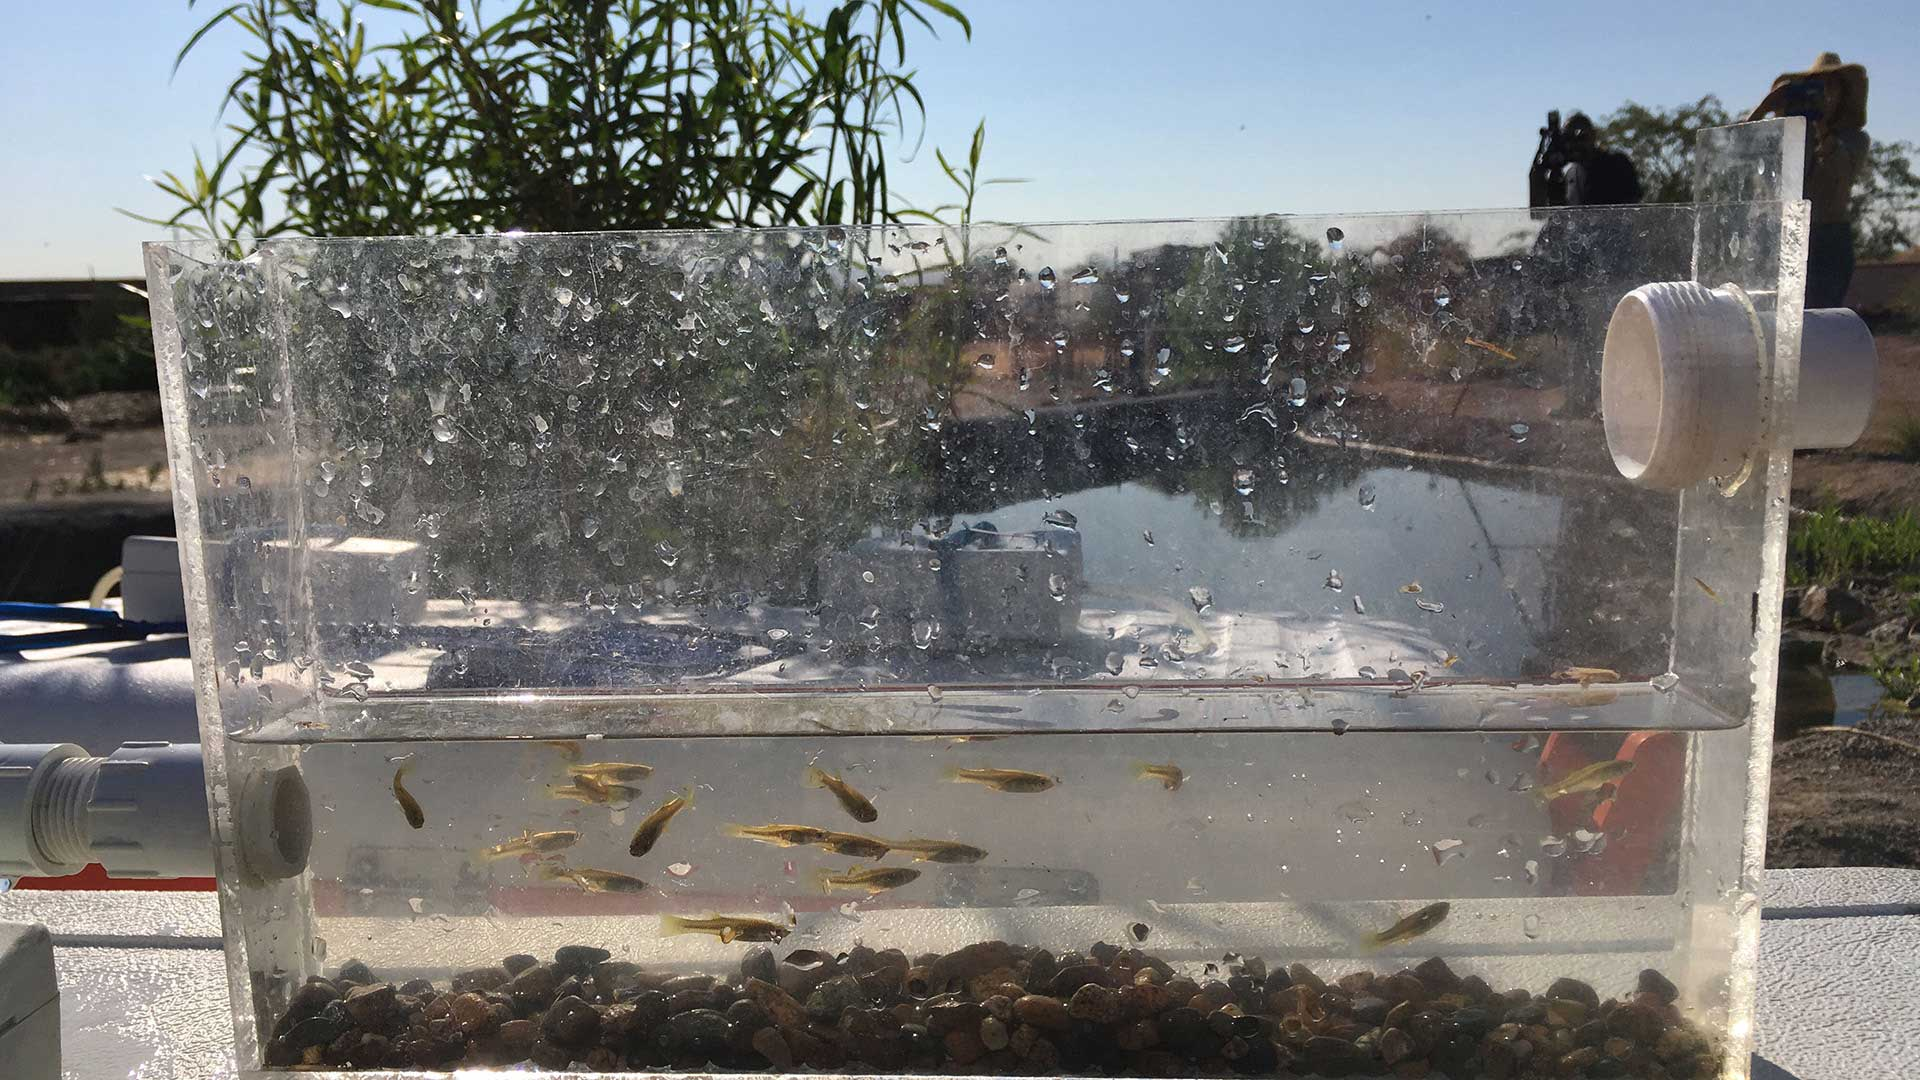 Endangered Gila topminnow being reintroduced to a new habitat at Mission Garden, March 2021.